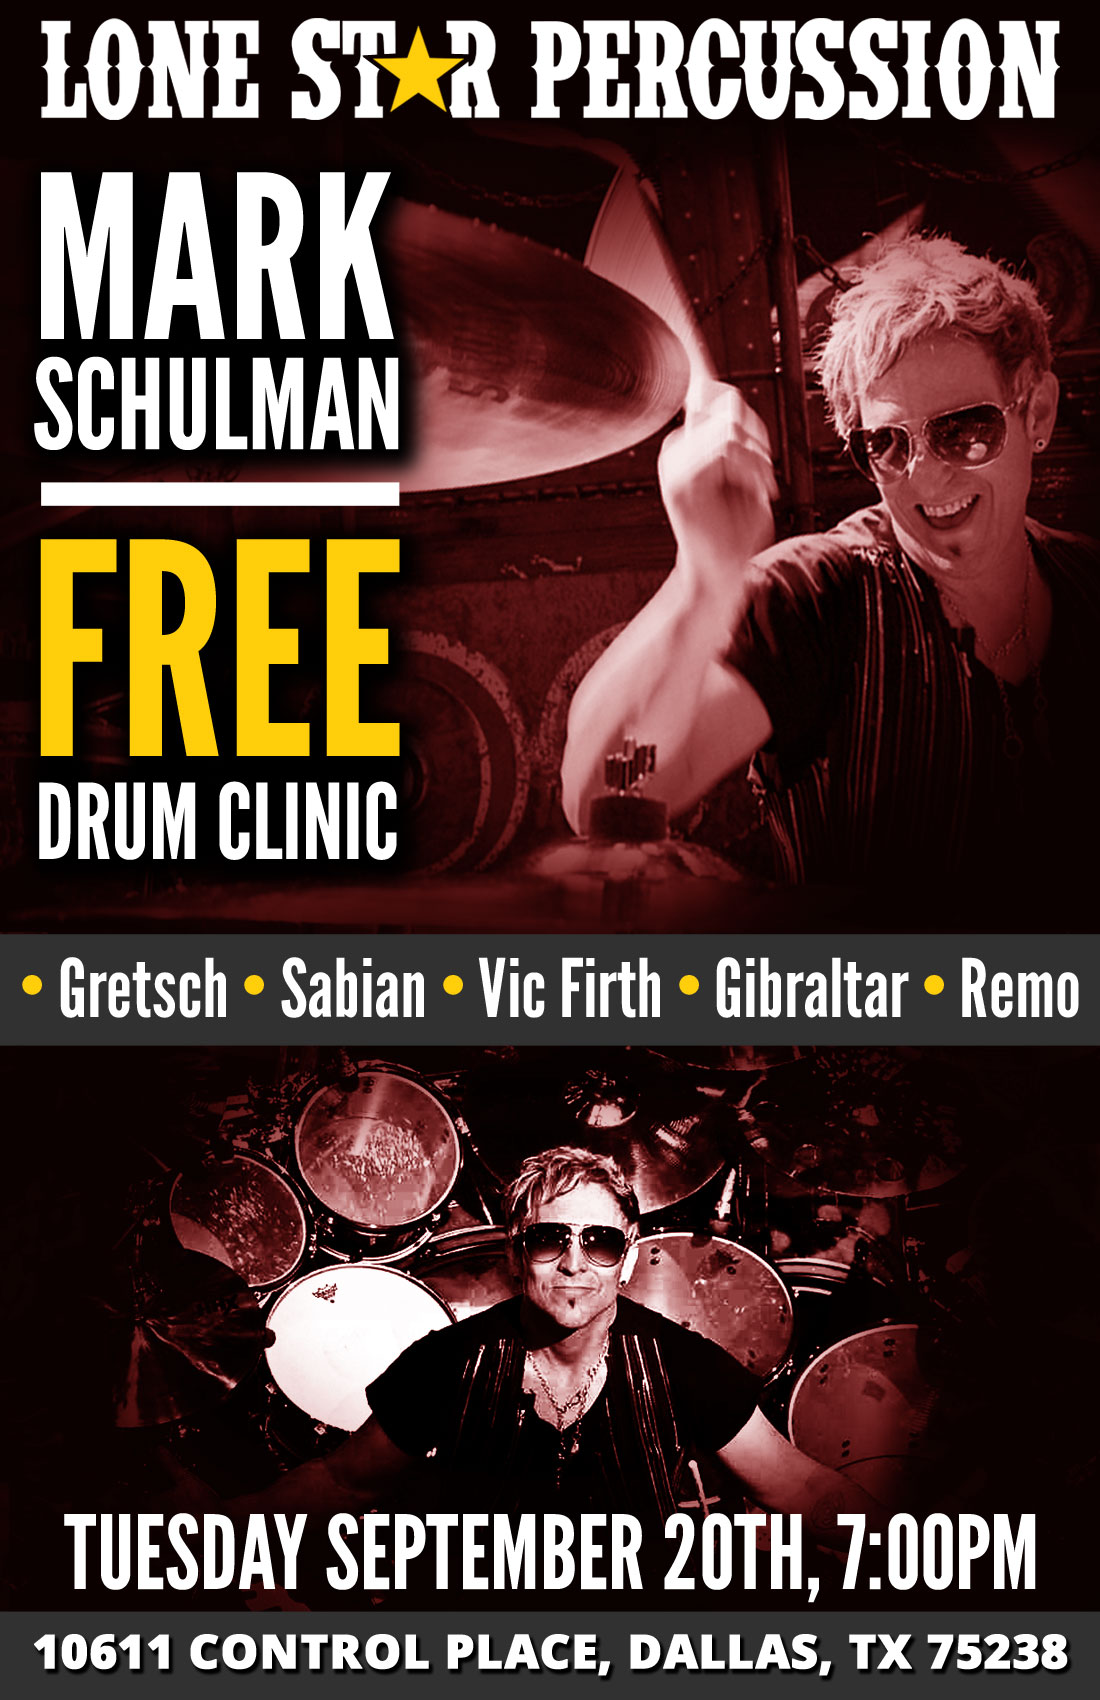 FREE Clinic: Mark Schulman, Tuesday September 20th, 7:00pm